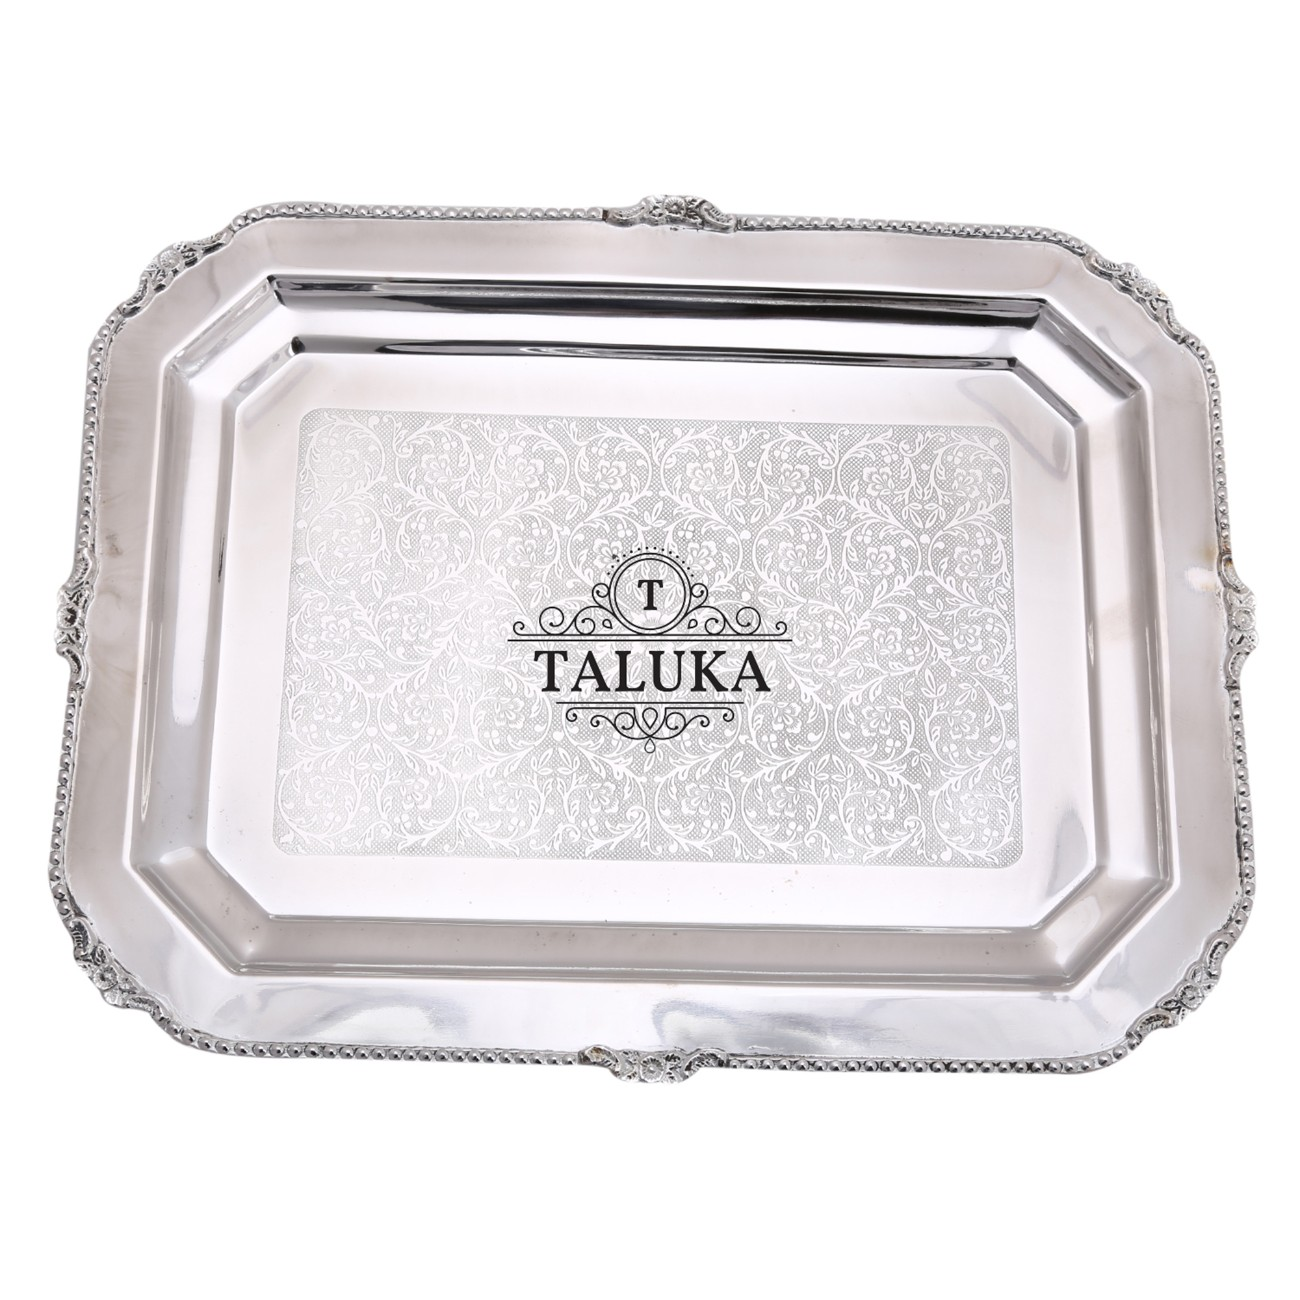 Brass Nickel Plated Tray Serving Tray/Plate / Charger Rectangular Shape